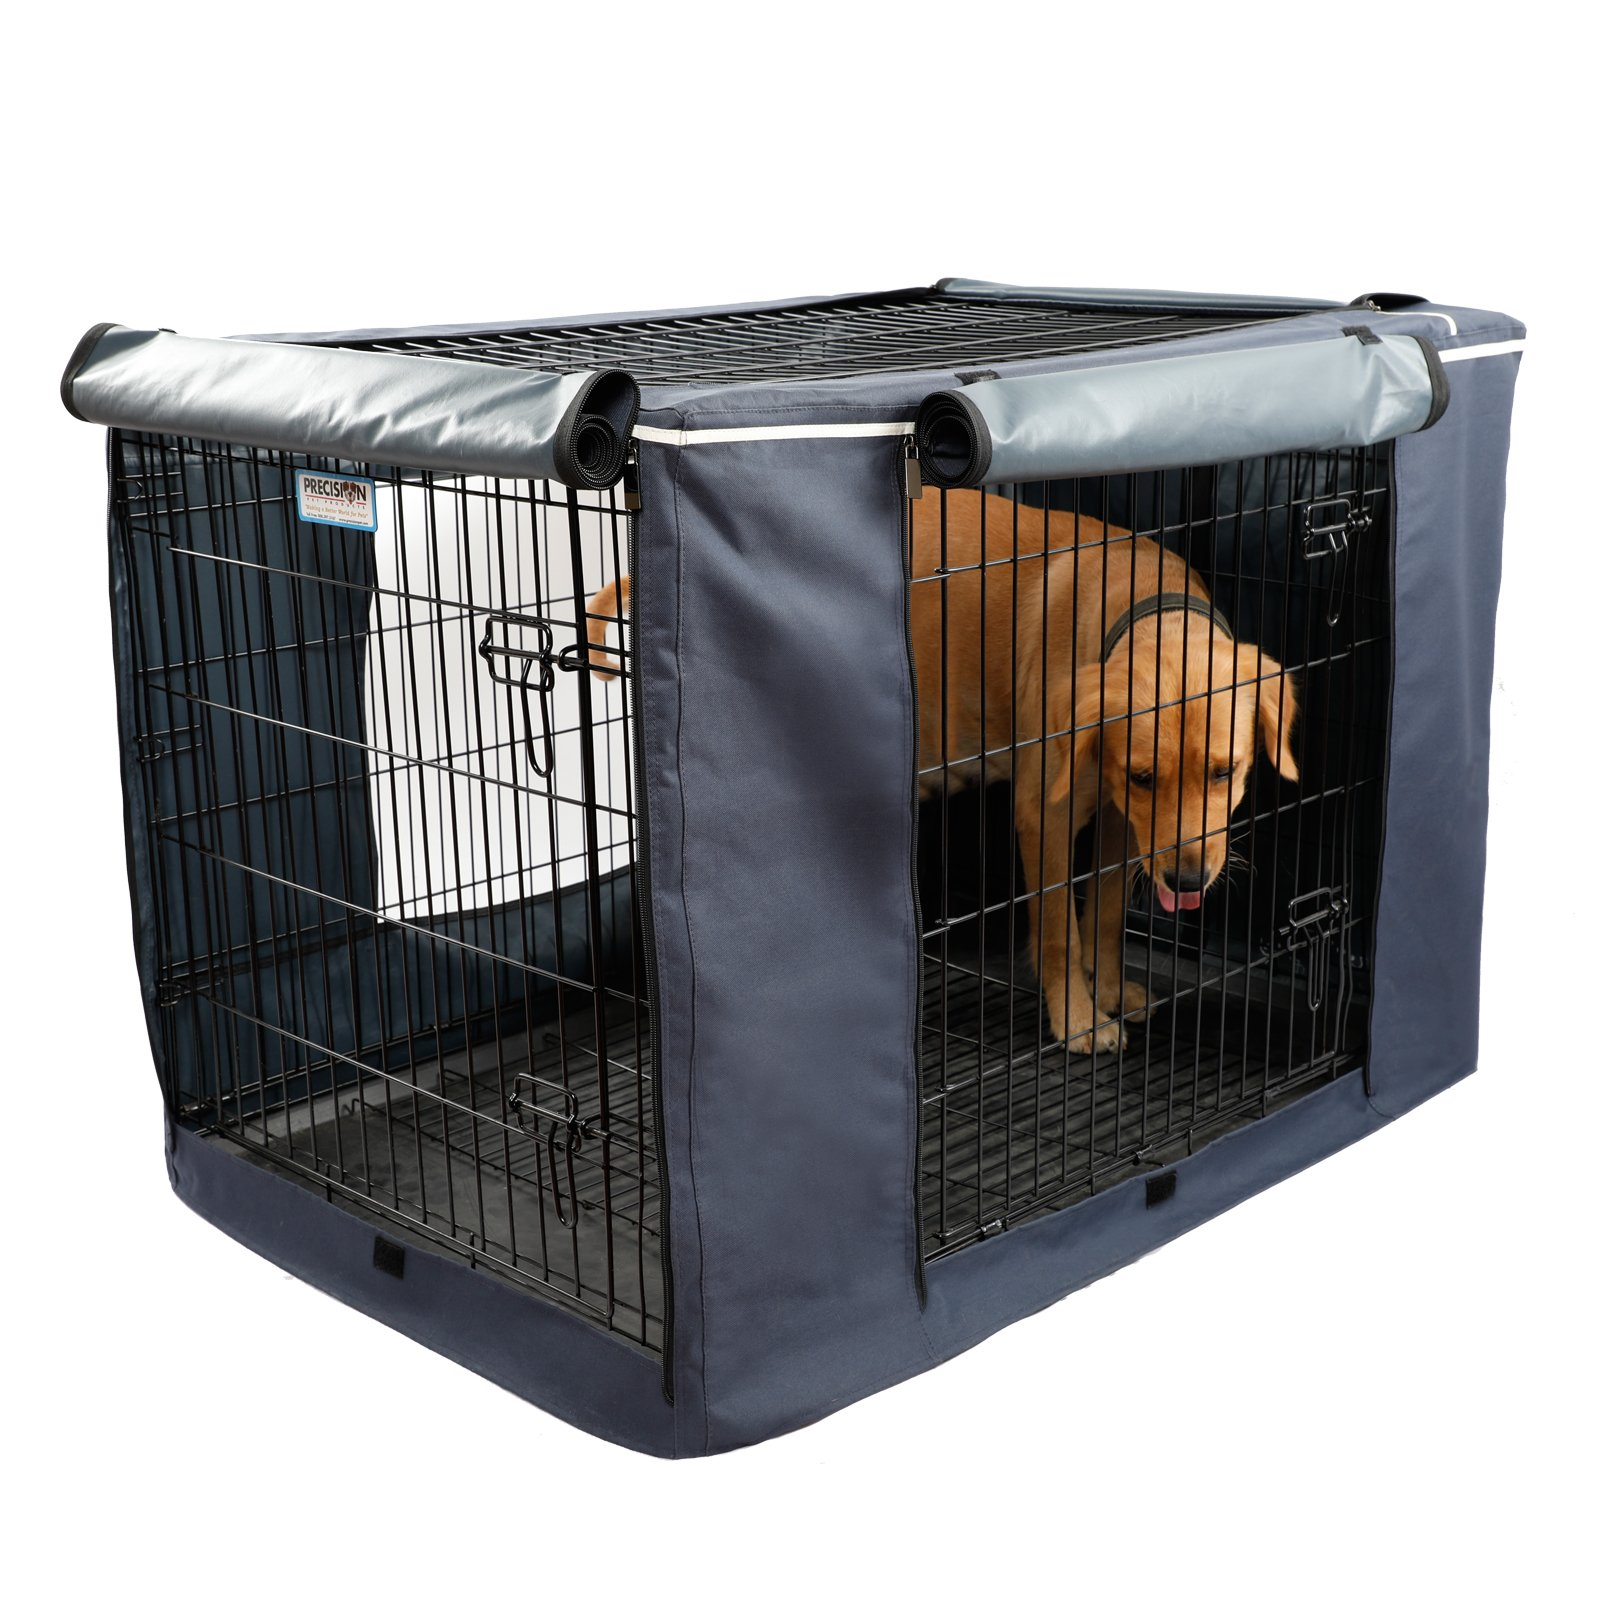 """Petsfit Oxford Cloth Pet Kennel Cover for Wire Dog Crates 42""""L x 28""""W x 30""""H, With Three-Side and Top Windows, Back Zipper, Dark Blue by Petsfit (Image #3)"""